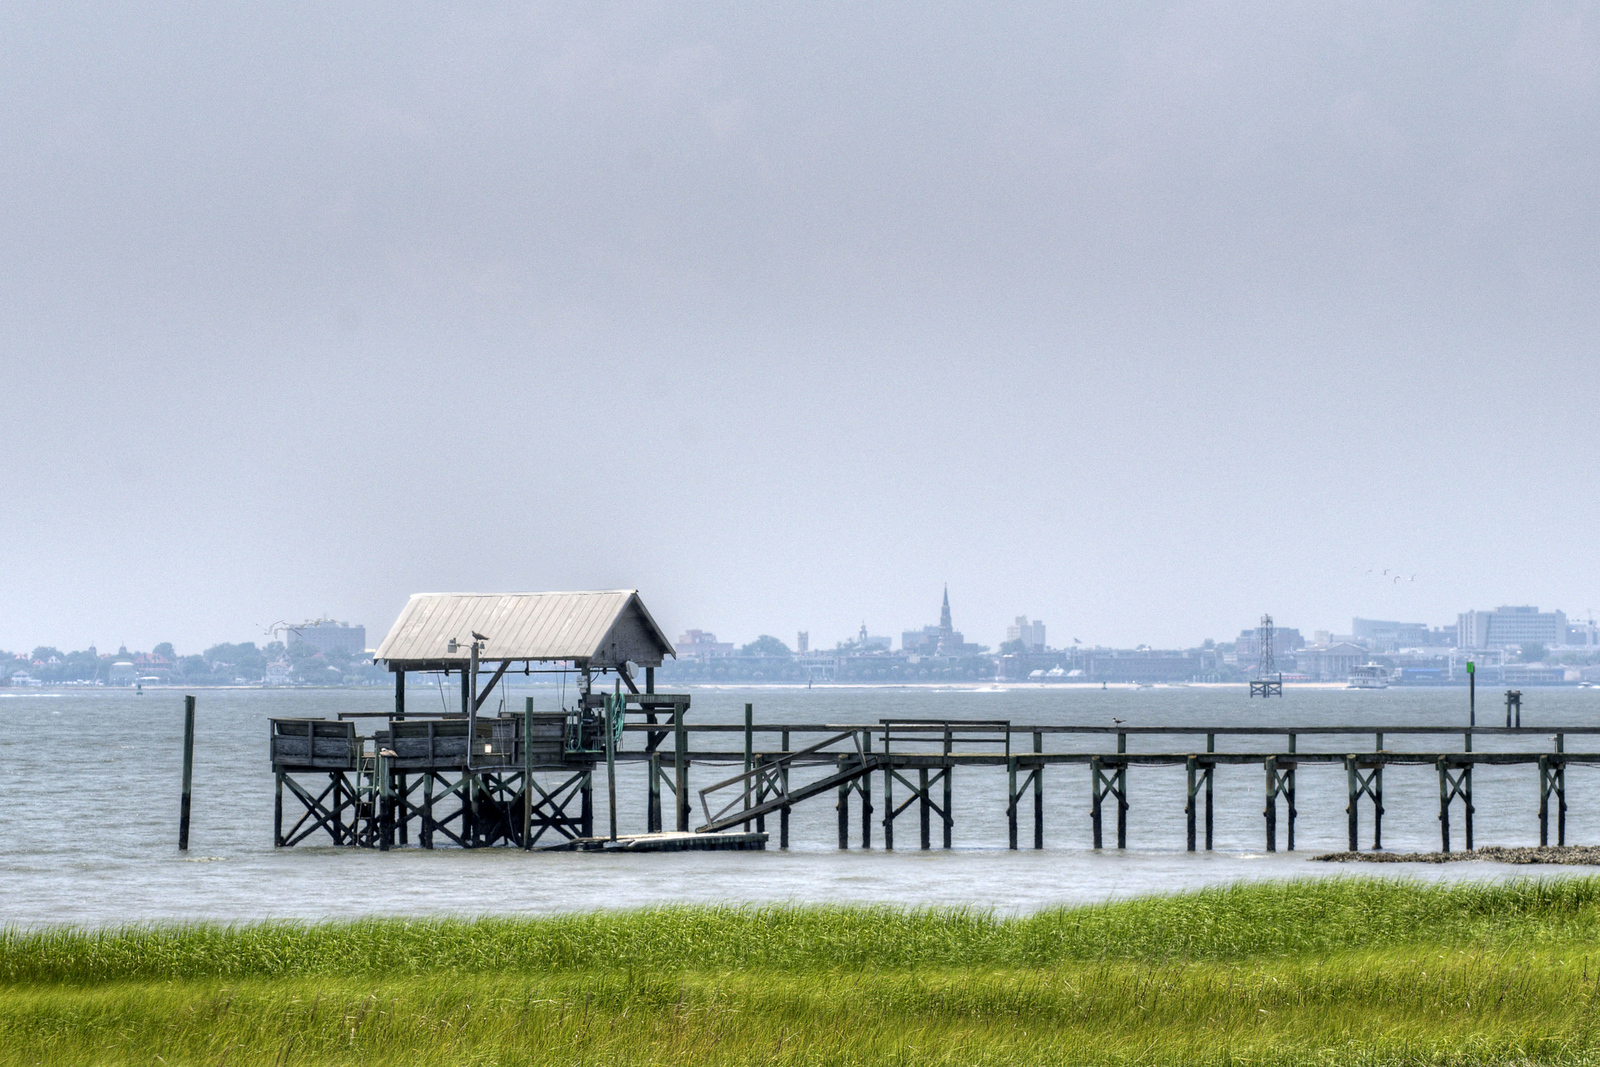 A view of a boat dock with downtown Charleston in the distance at Pitt Street Park in Mt. Pleasant, SC on Wednesday, July 9, 2014. Copyright 2014 Jason Barnette Pitt Street Park is located on the site of the former Pitt Street Bridge that once connected Mt. Pleasant with Sullivan's Island. When the nearby Ben Sawyer Bridge was completed, the Pitt Street Bridge was abandoned. Today, the bridge only stretches half the distance it once did, but serves as a pedestrian greenway with a wooden boardwalk along the old concrete pillars, providing a place for walkers, joggers, bikers, and fishermen to enjoy the space.